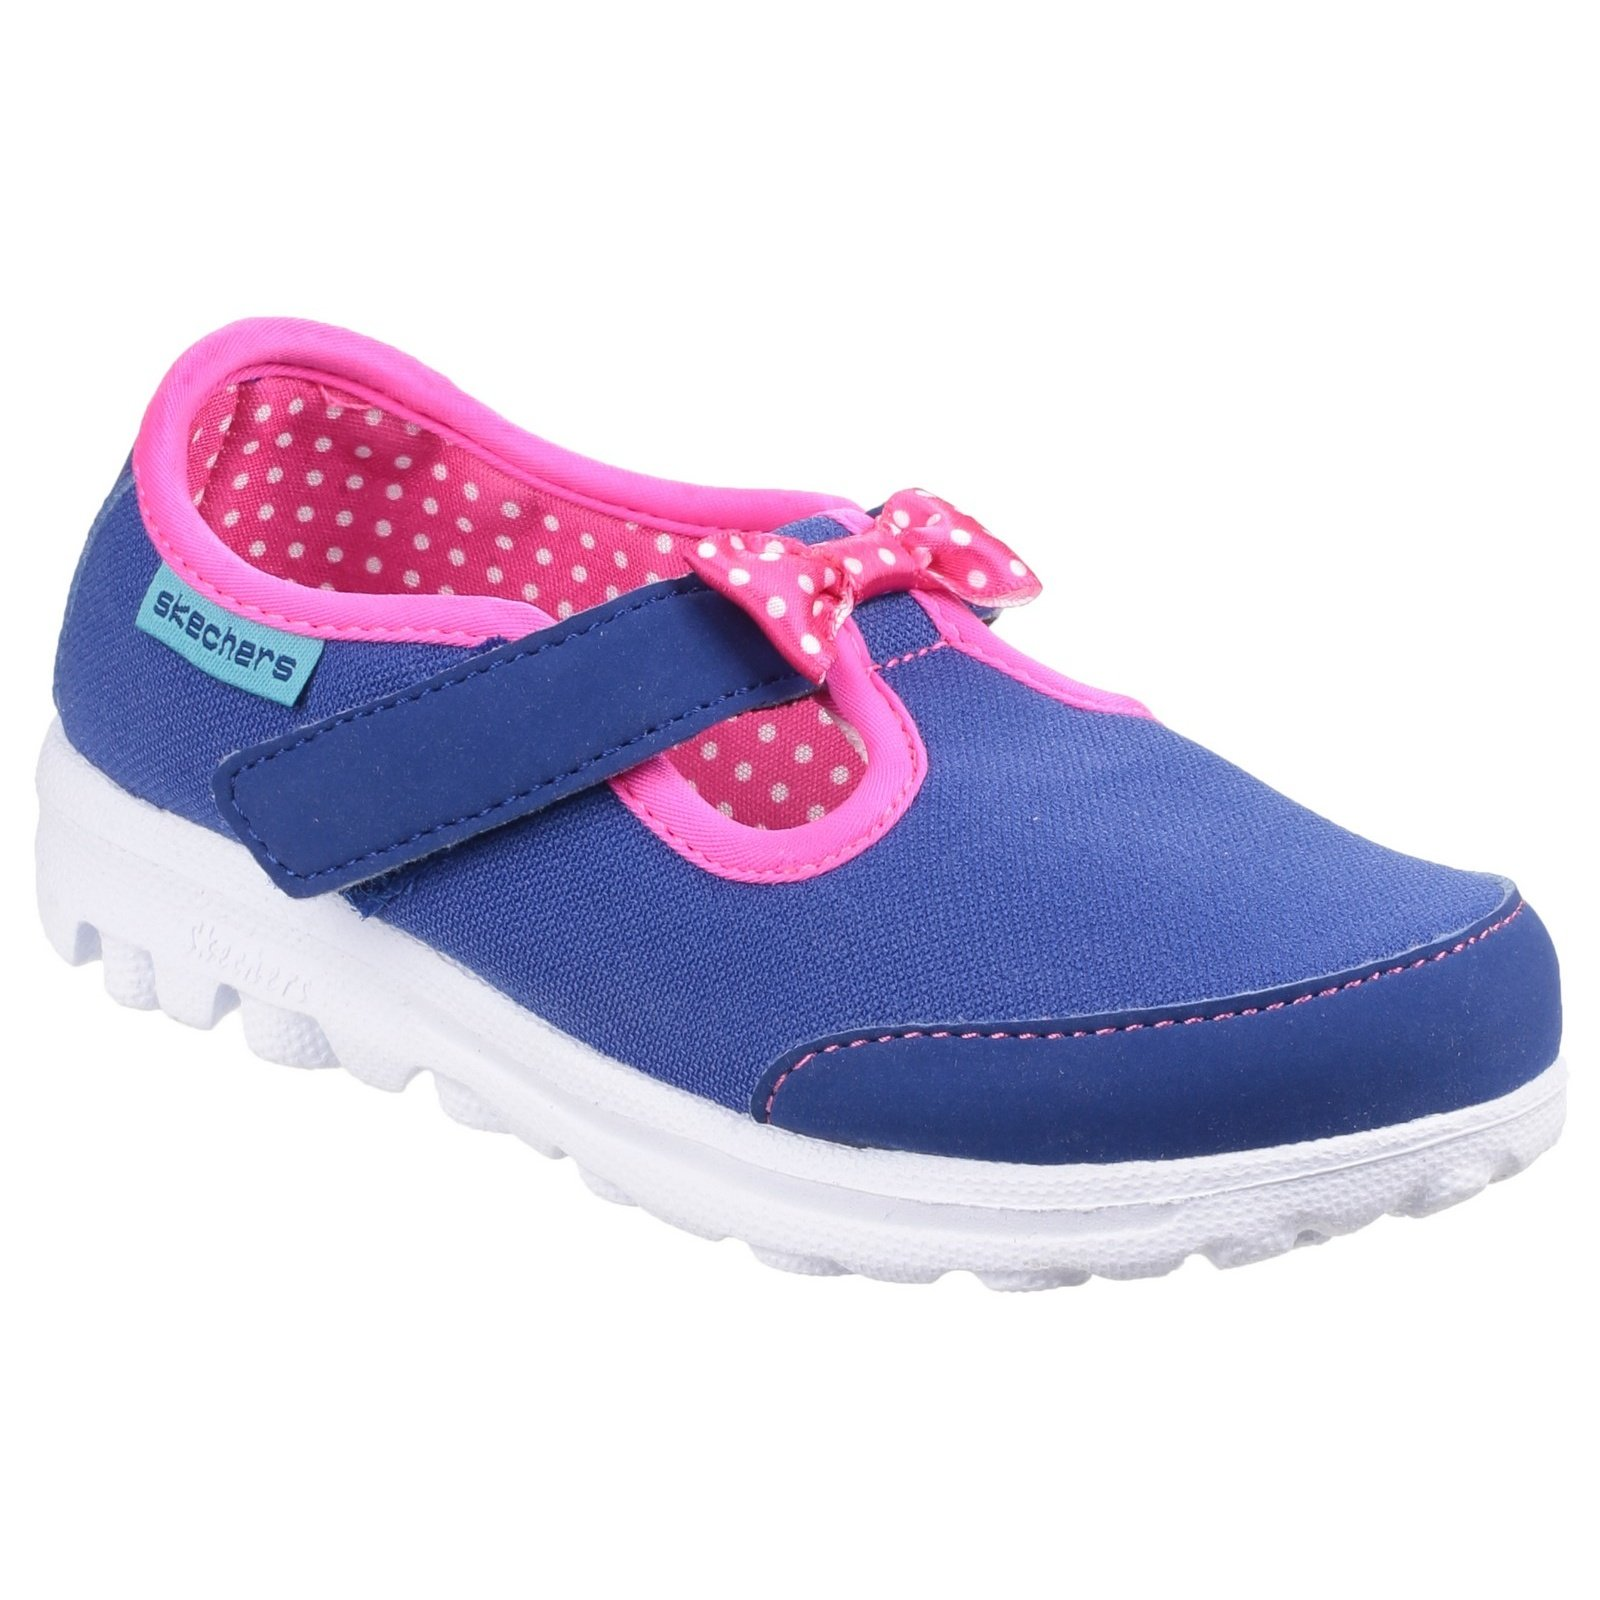 Skechers Childrens Girls Go Walk Bitty Bow Touch Fasten Shoe (5 US Child) (Blue/Pink)